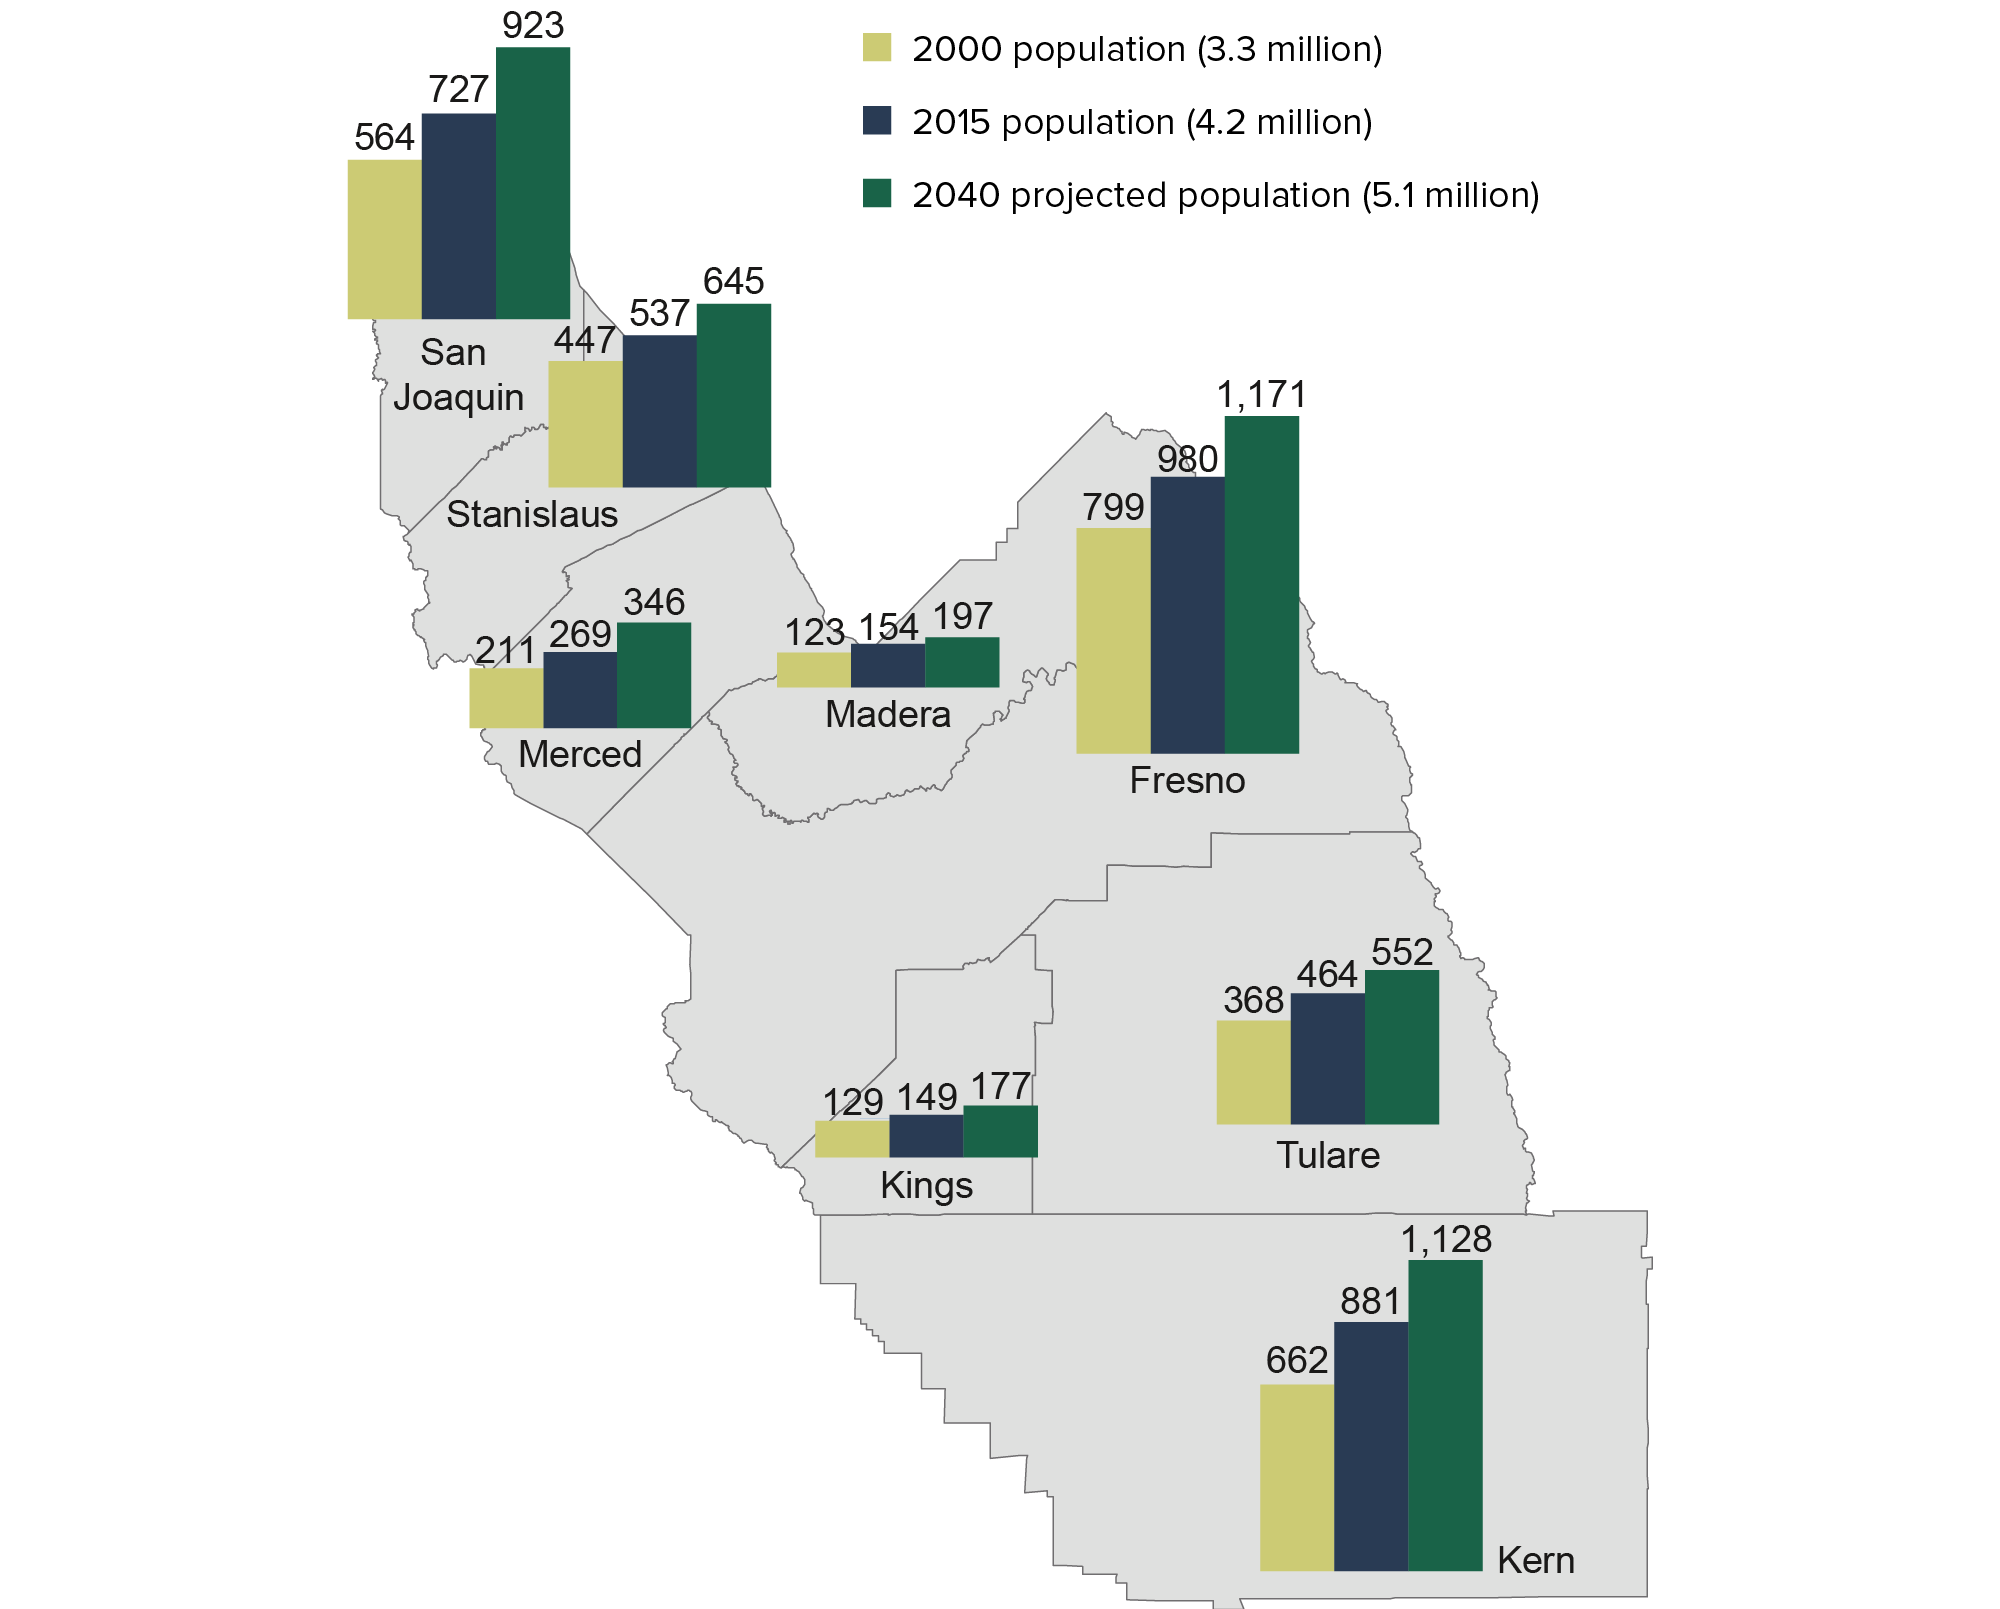 figure - The valleys rapid population growth is projected to continue